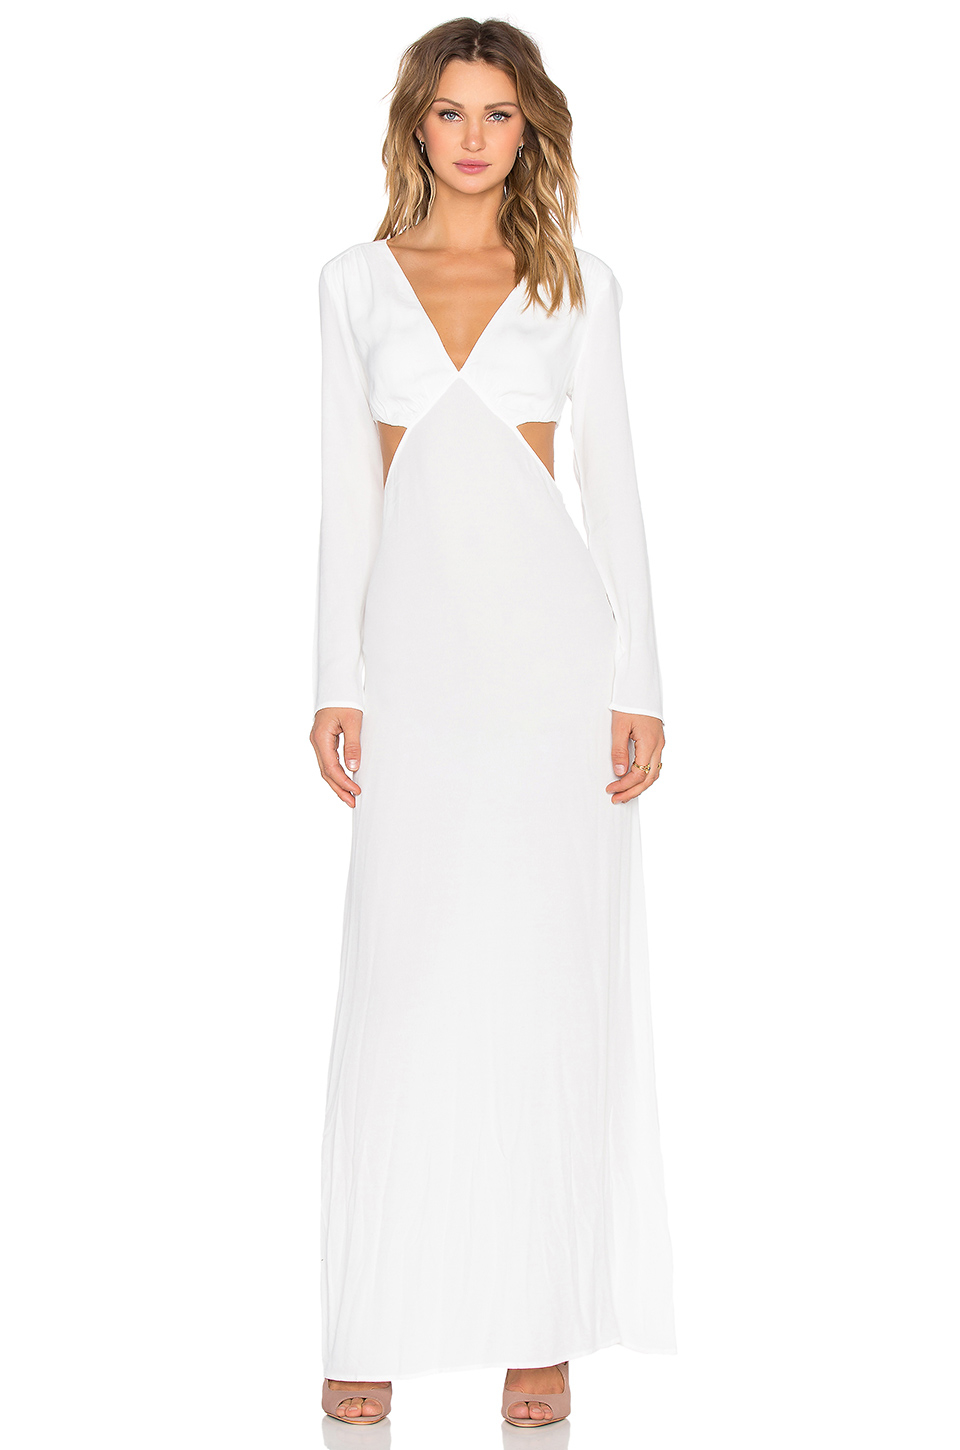 The ldrs Long Sleeve Cutout Maxi Dress in White | Lyst